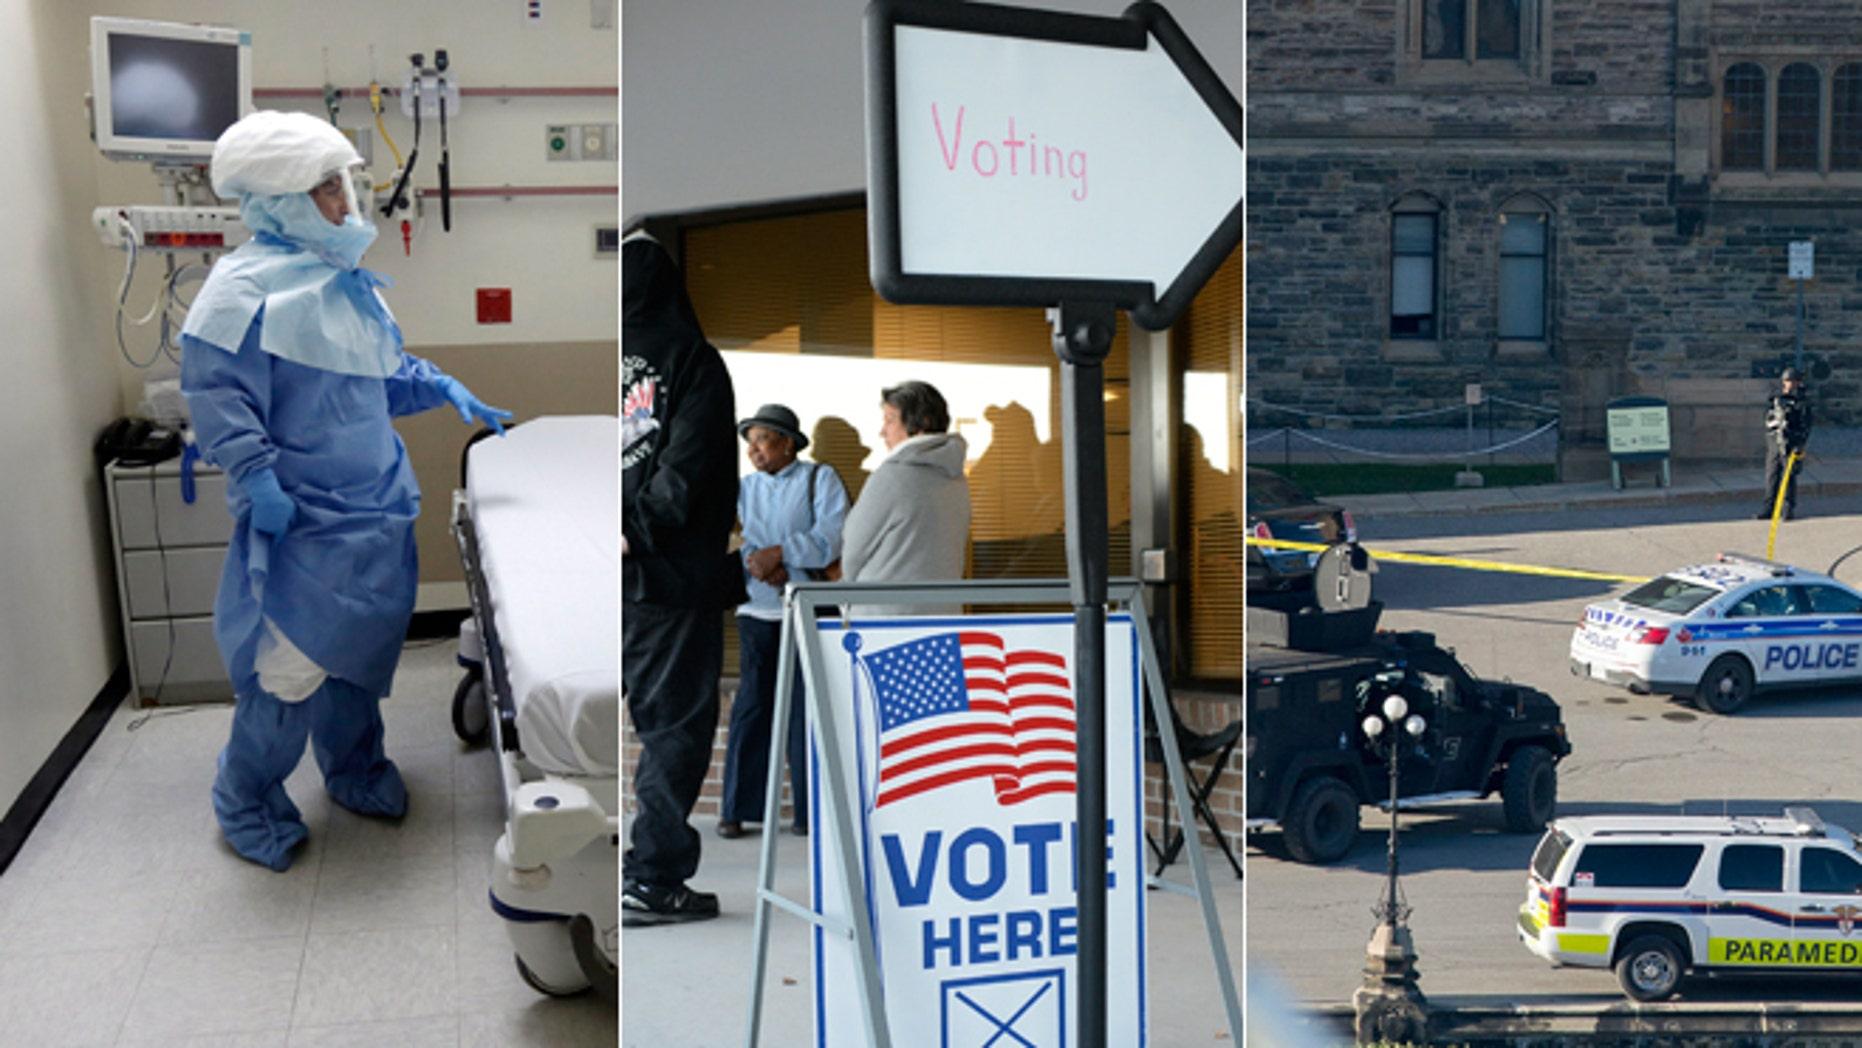 In this Oct. 8, 2014, file photo, Bellevue Hospital nurses pose in protective suits in an isolation room. This Thursday, Oct. 23, 2014 photo shows the Board of Elections office, in Wilmington, N.C. and this Wednesday, Oct. 22, 2014 photo shows police teams outside Centre Block on Parliament Hill in Ottawa, Ontario.